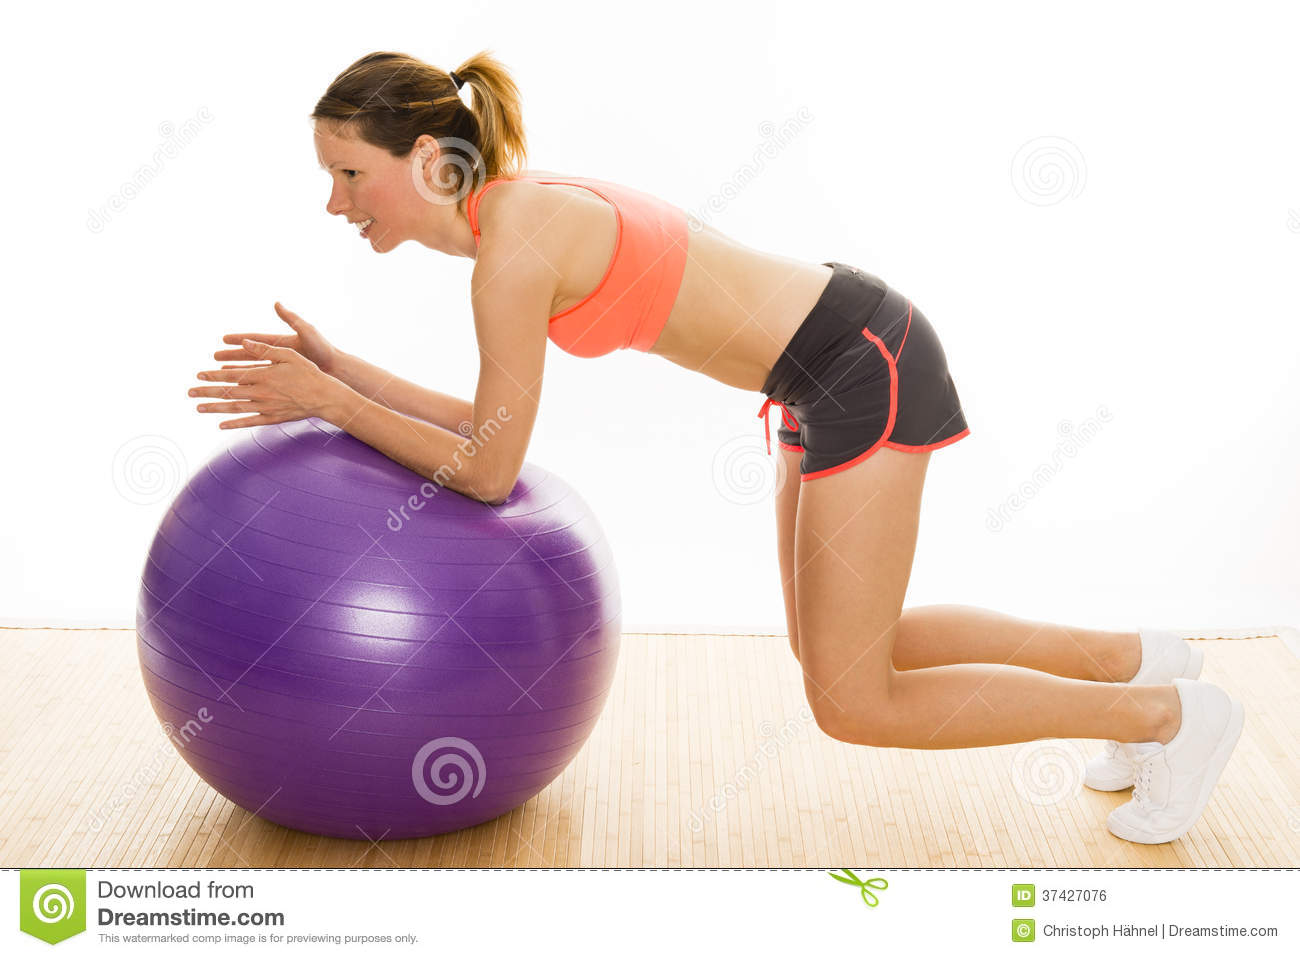 what are some fitness exercises